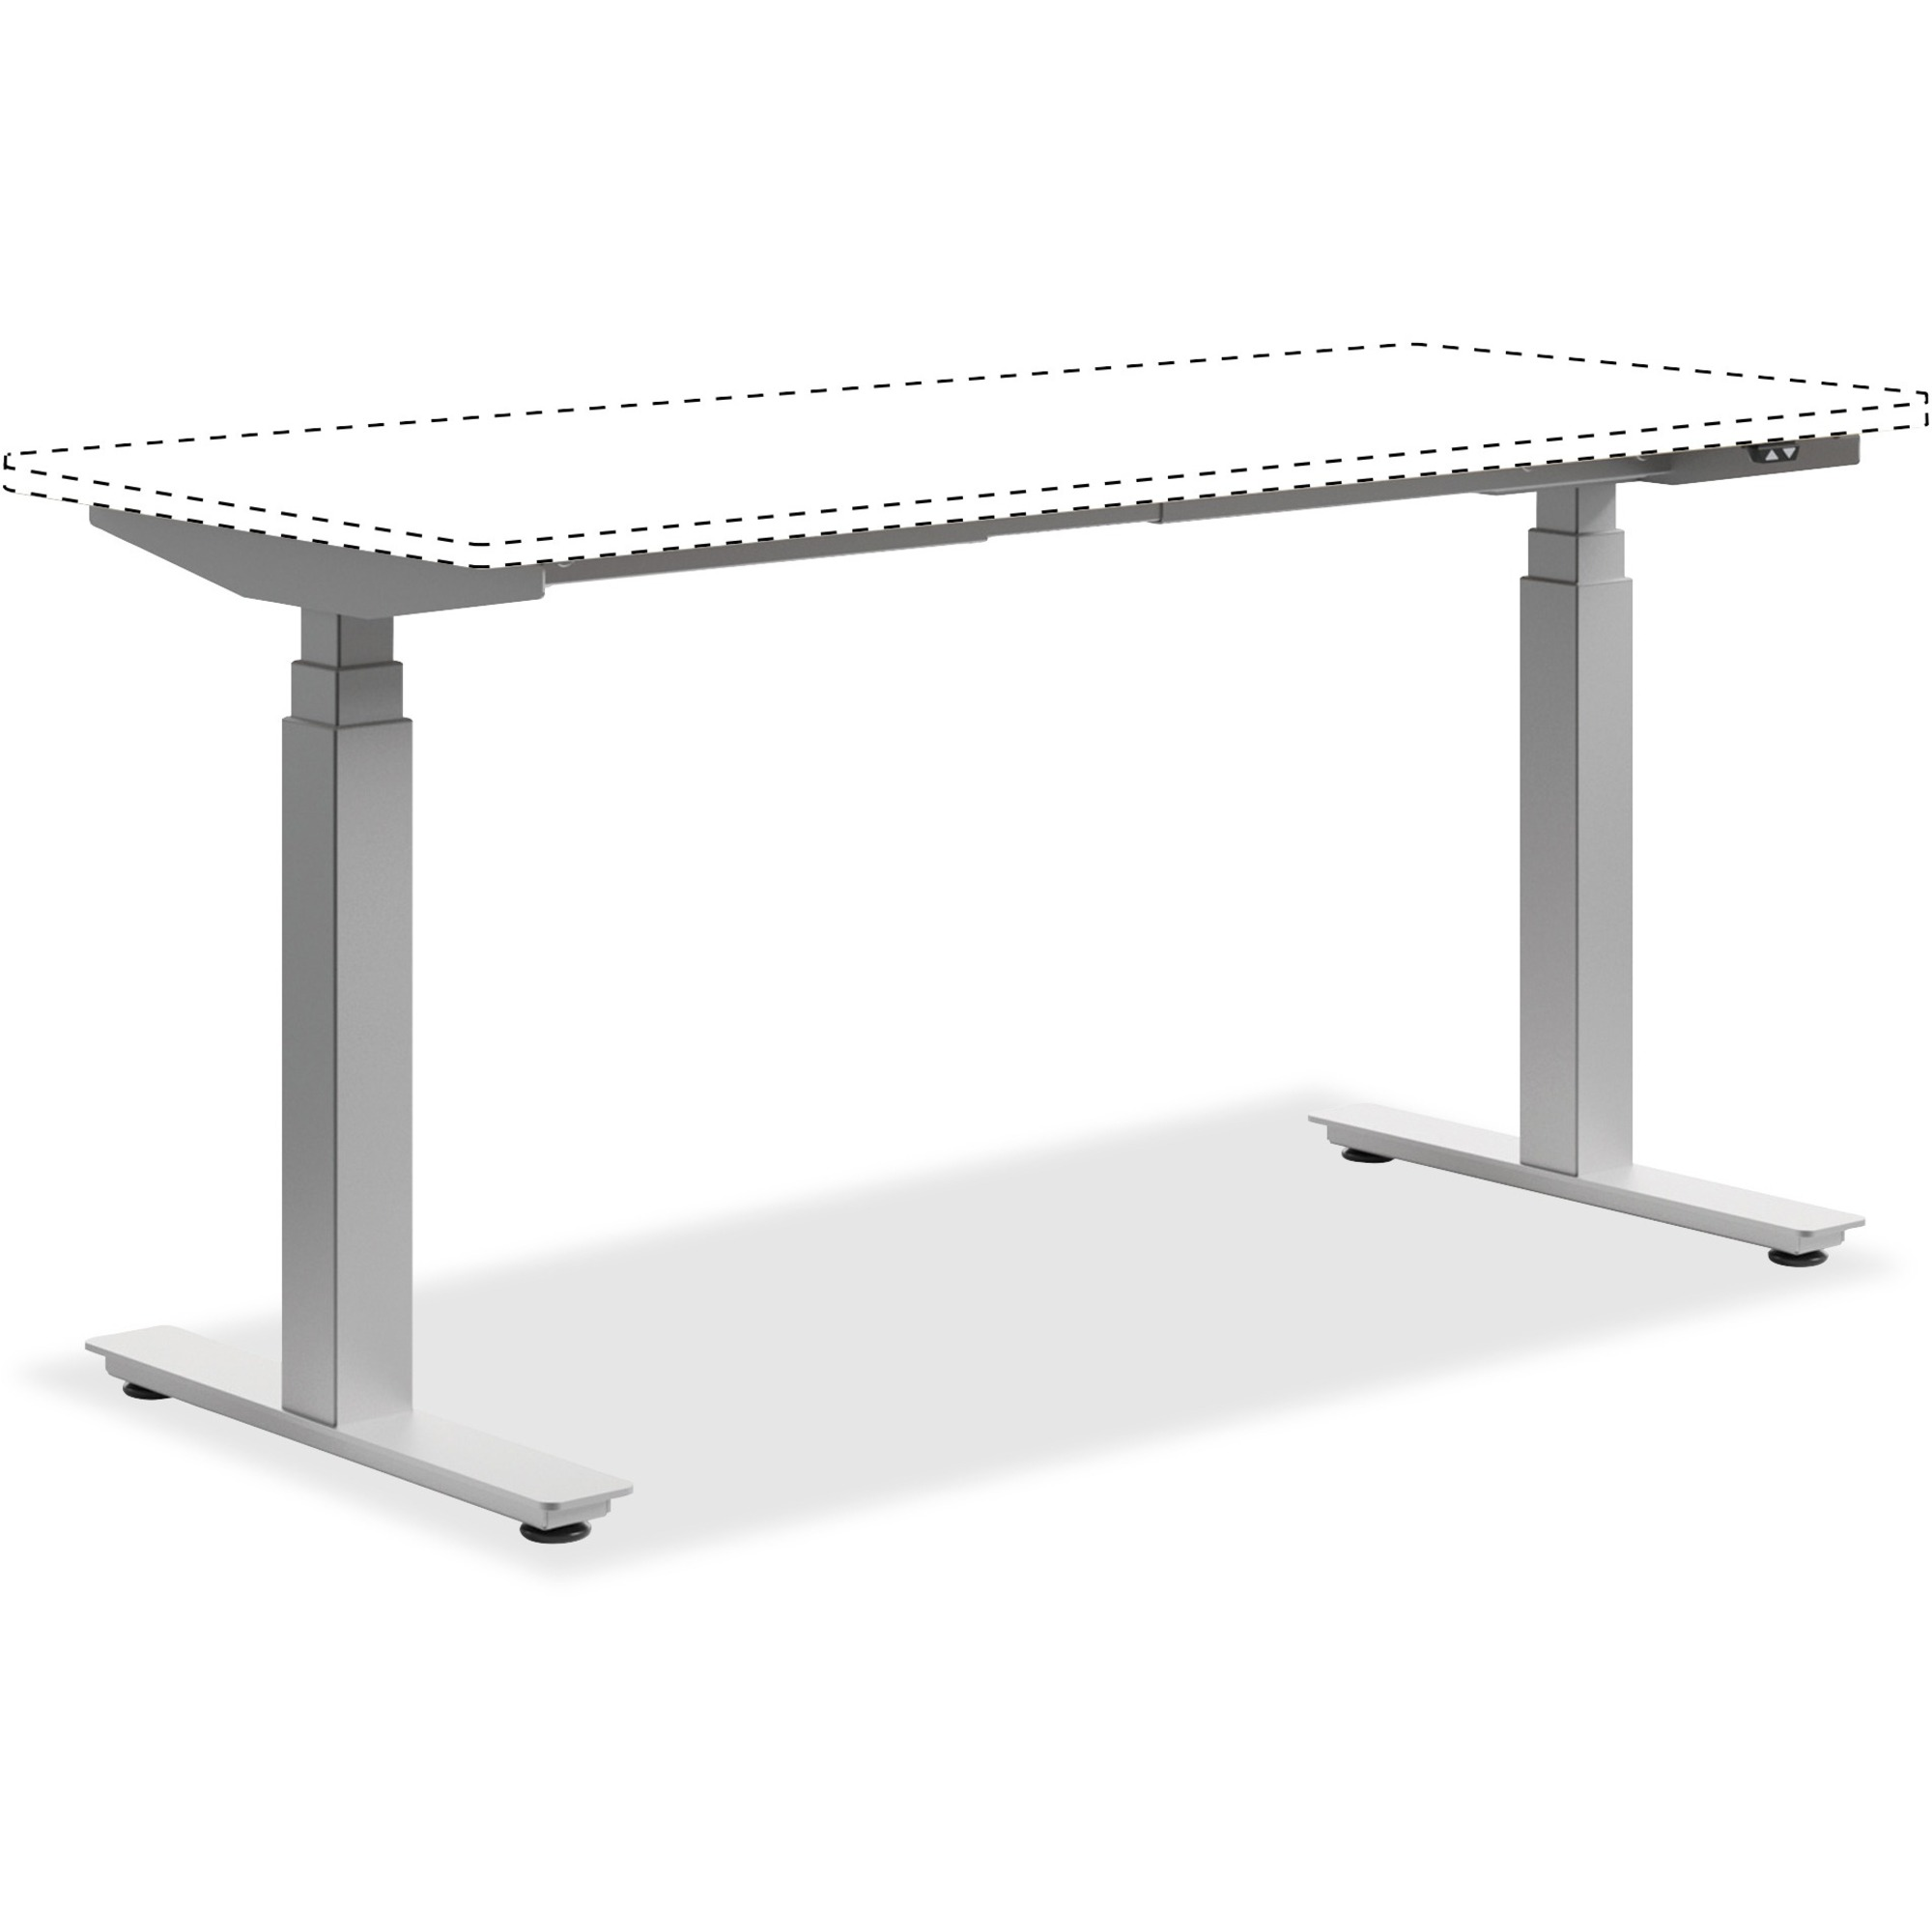 West Coast Office Supplies Furniture Furniture Collections Desks Tables Sit Stand